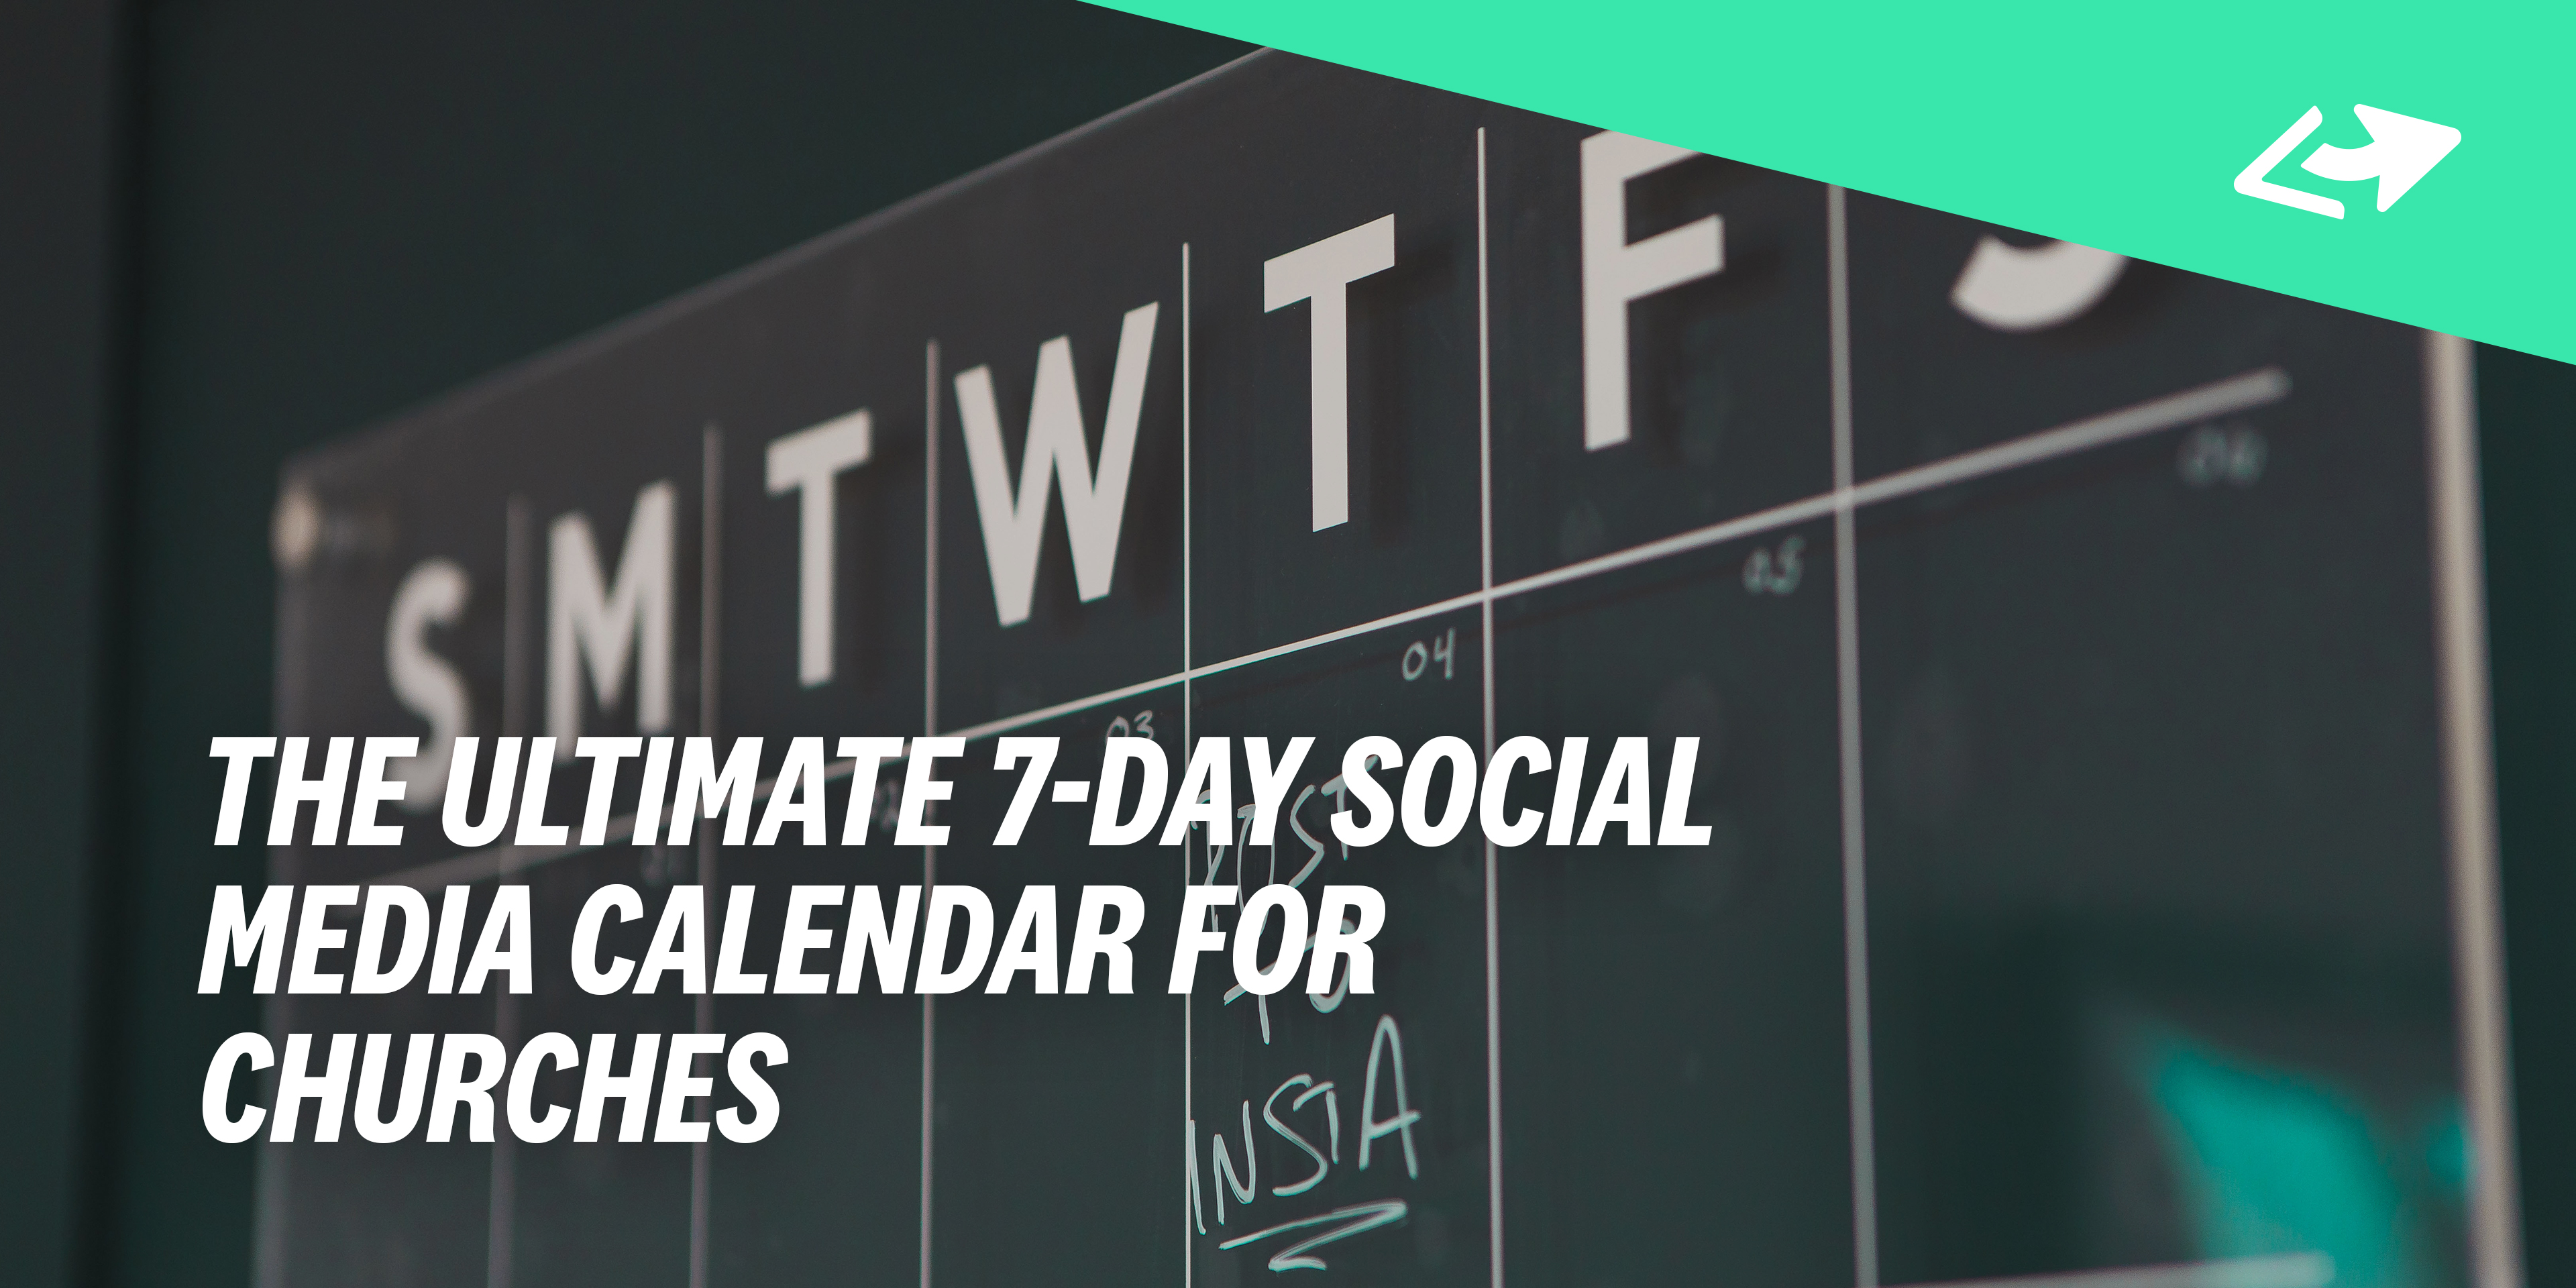 The Ultimate 7-Day Social Media Calendar For Churches - Pro